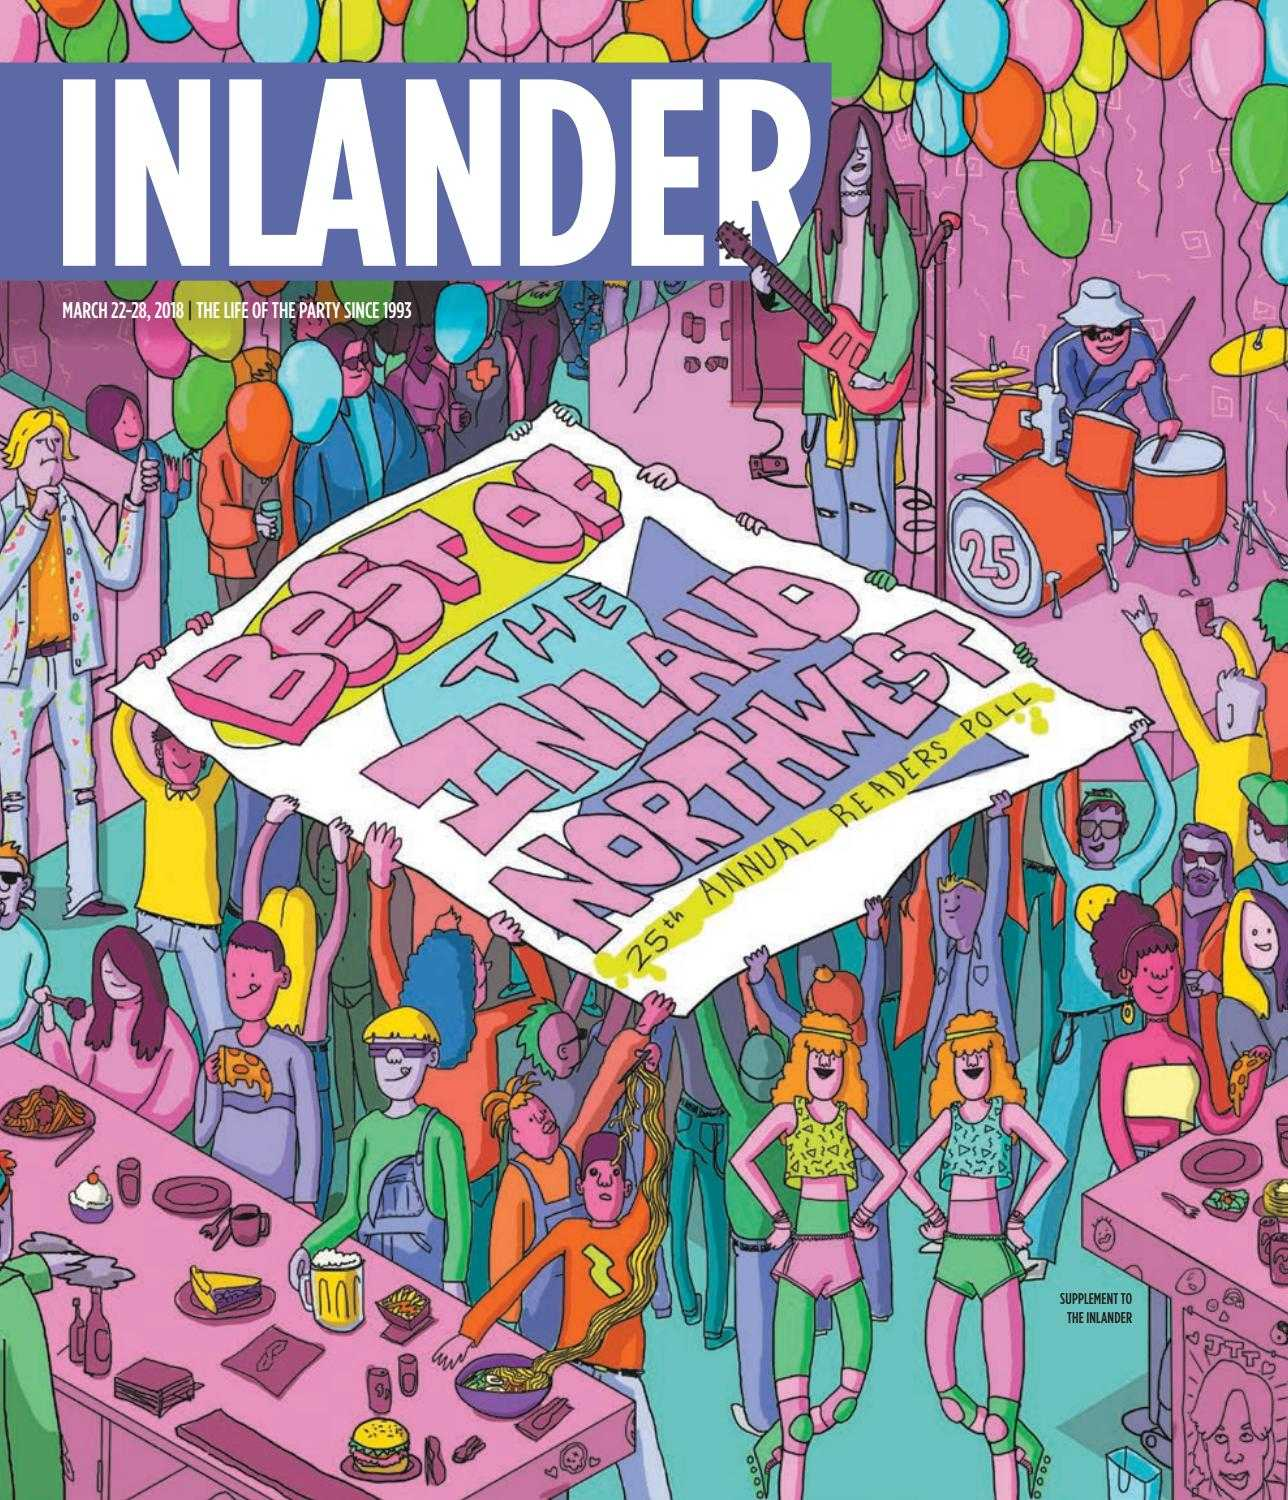 Bowling for Columbine Worksheet Answers and Inlander 03 22 2018 by the Inlander issuu